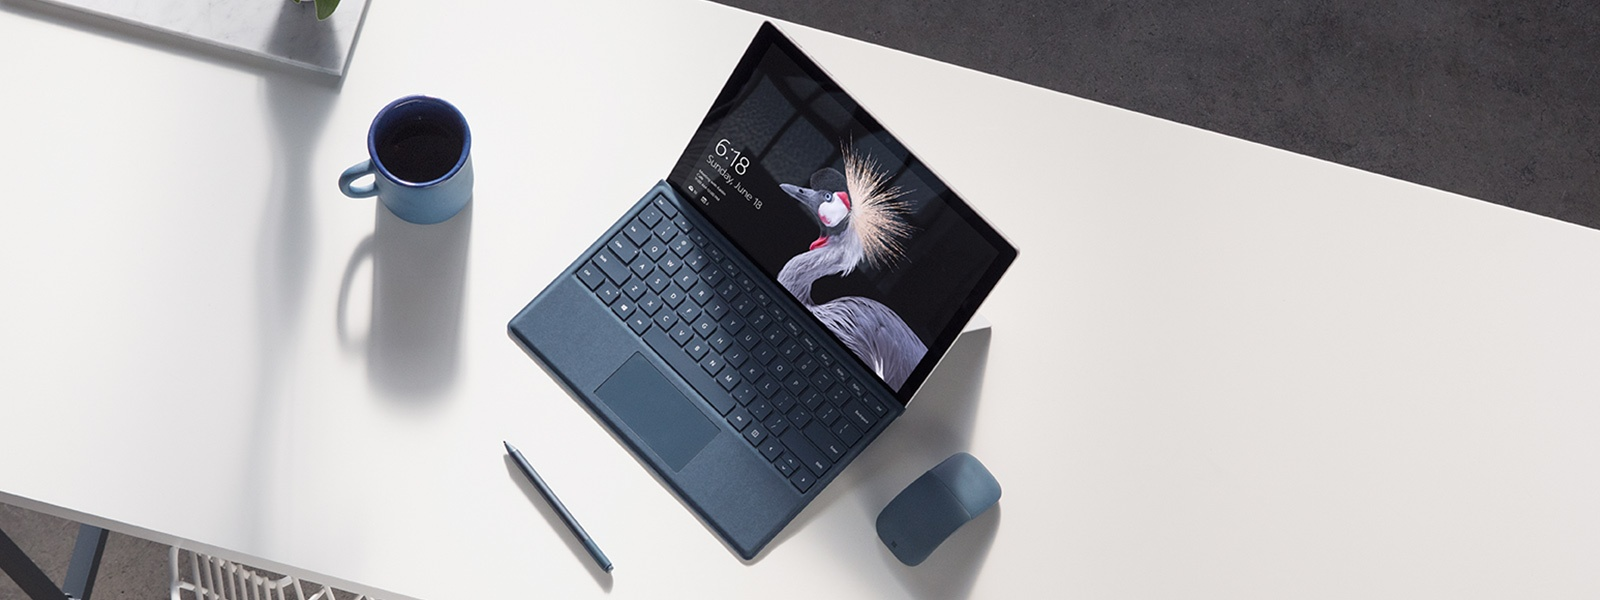 What benefits does the Microsoft Surface bring to your business? - Featured Image